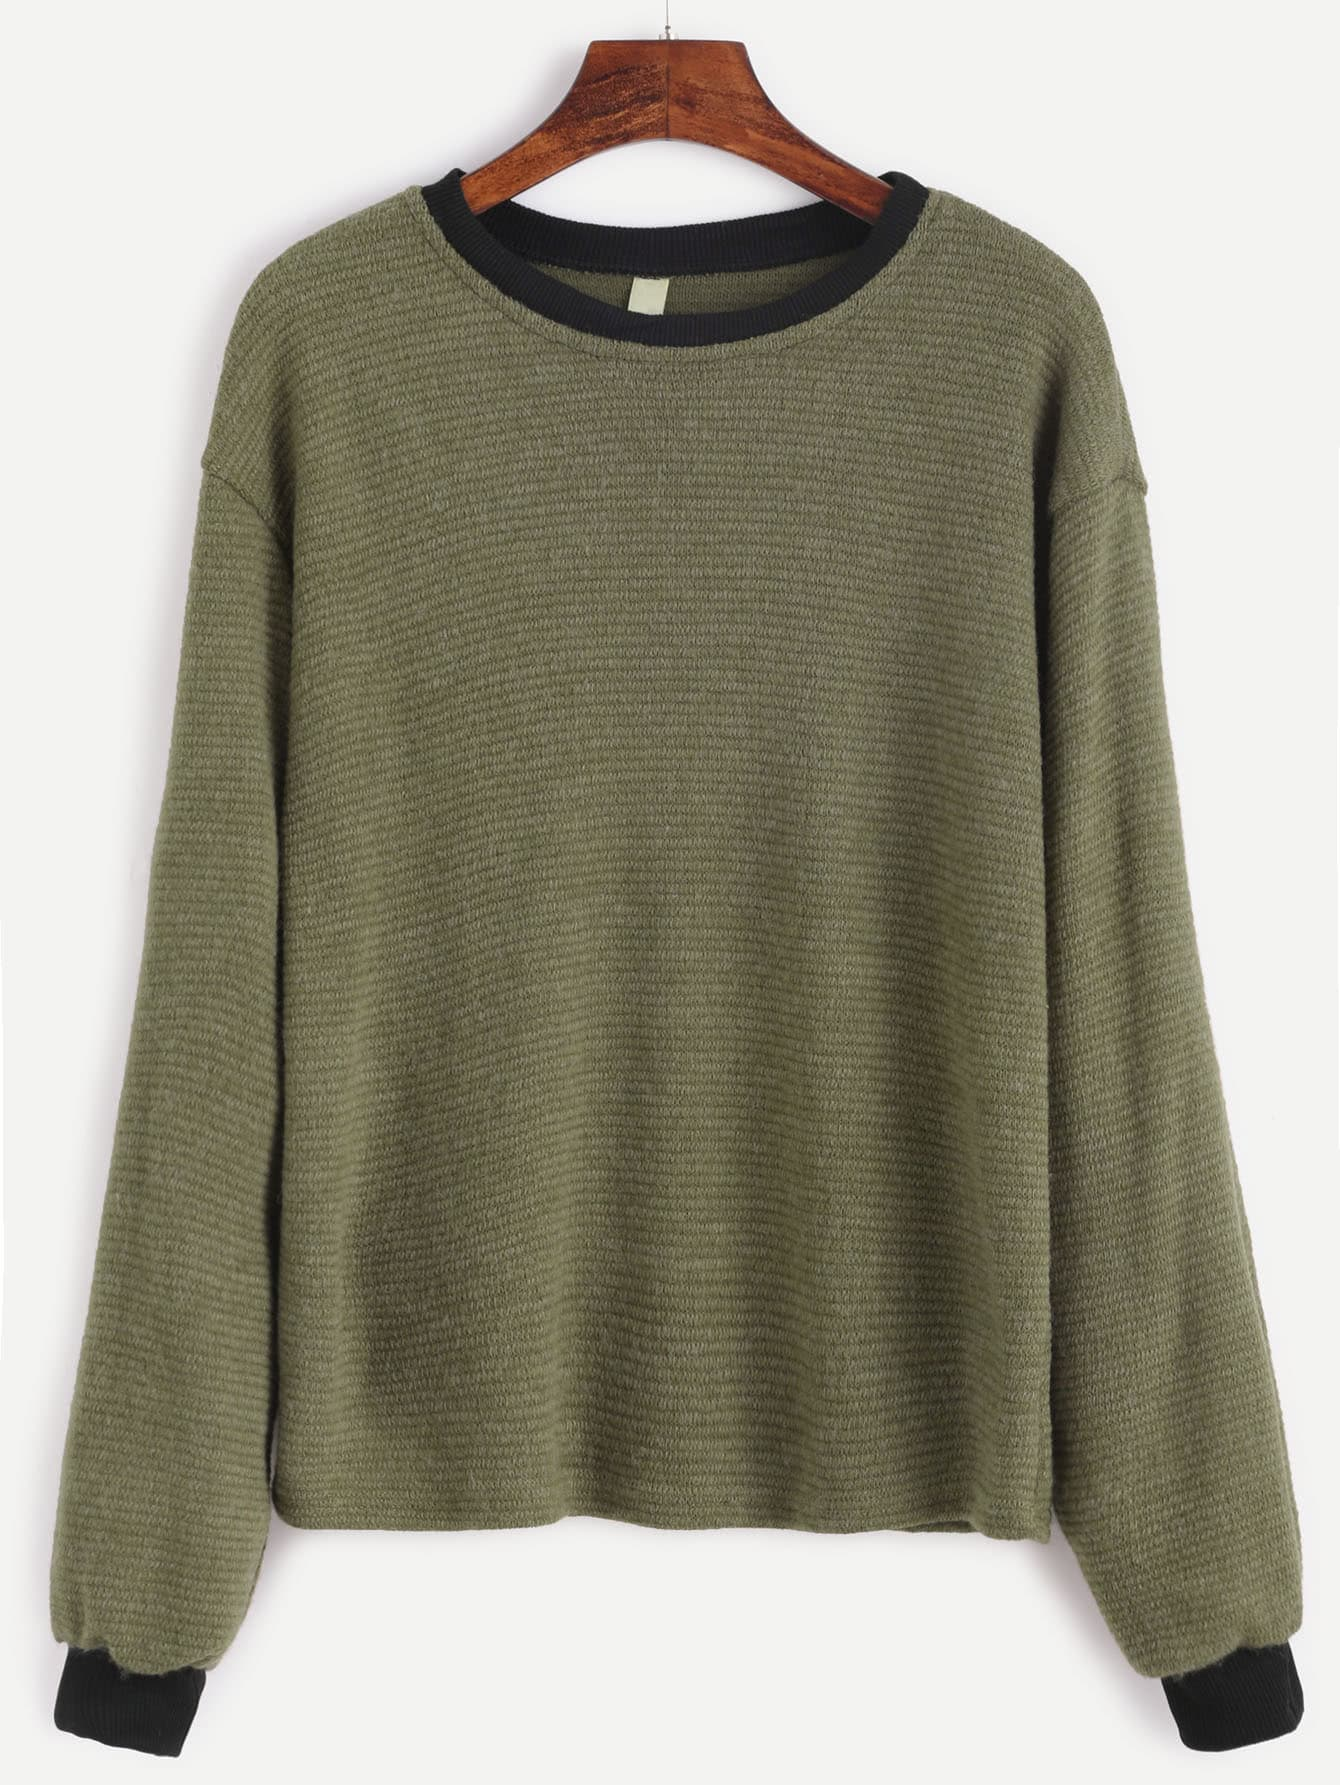 Contrast Trim Drop Shoulder Ribbed Sweater sweater161006101